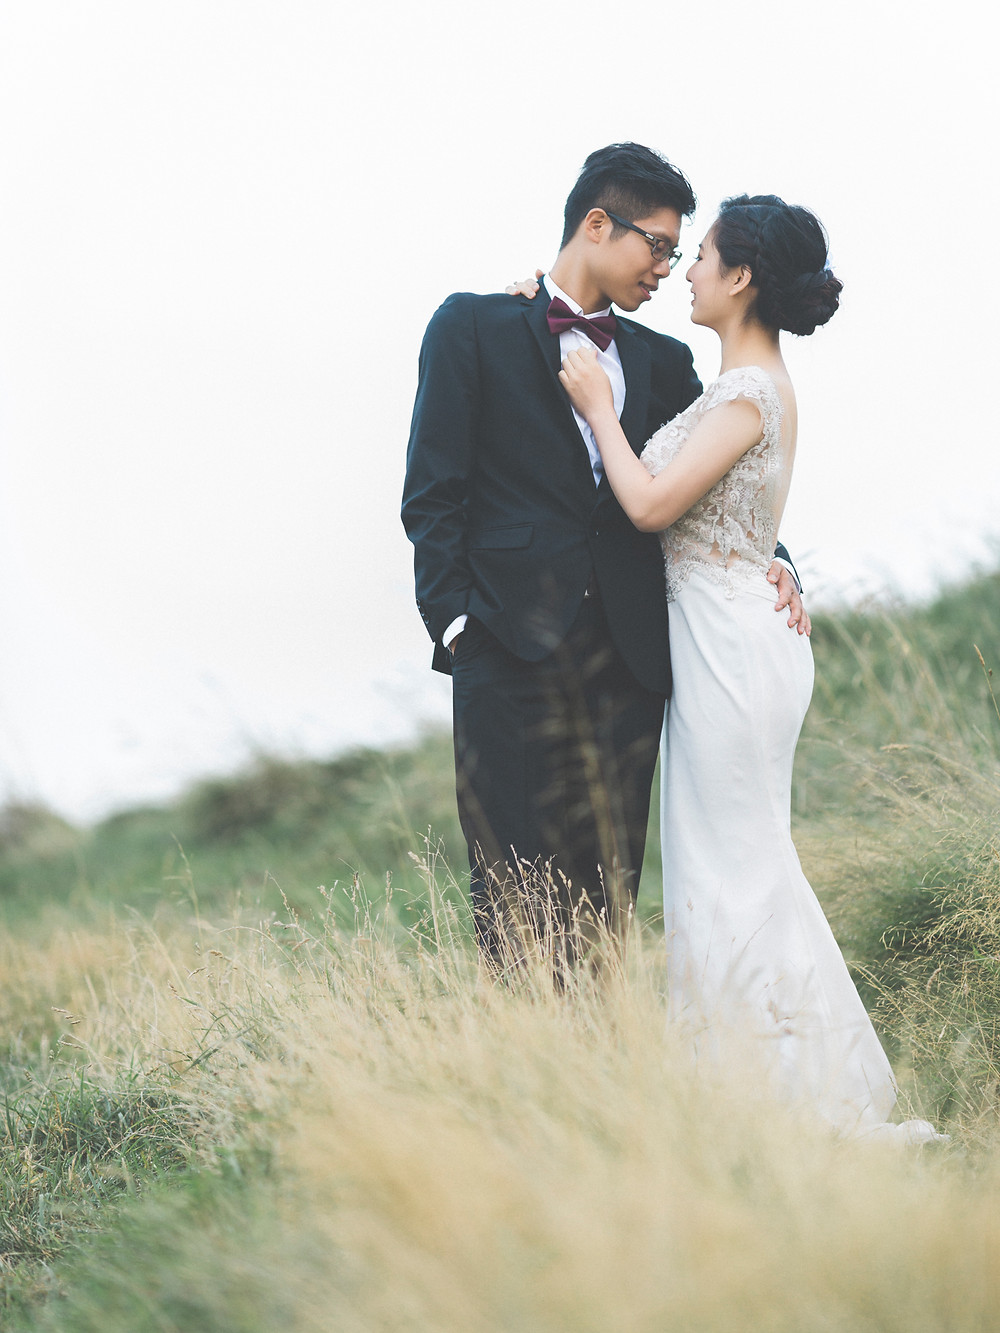 Kathy & OA Elopement Wedding in Edinburgh Arther Chen Photography